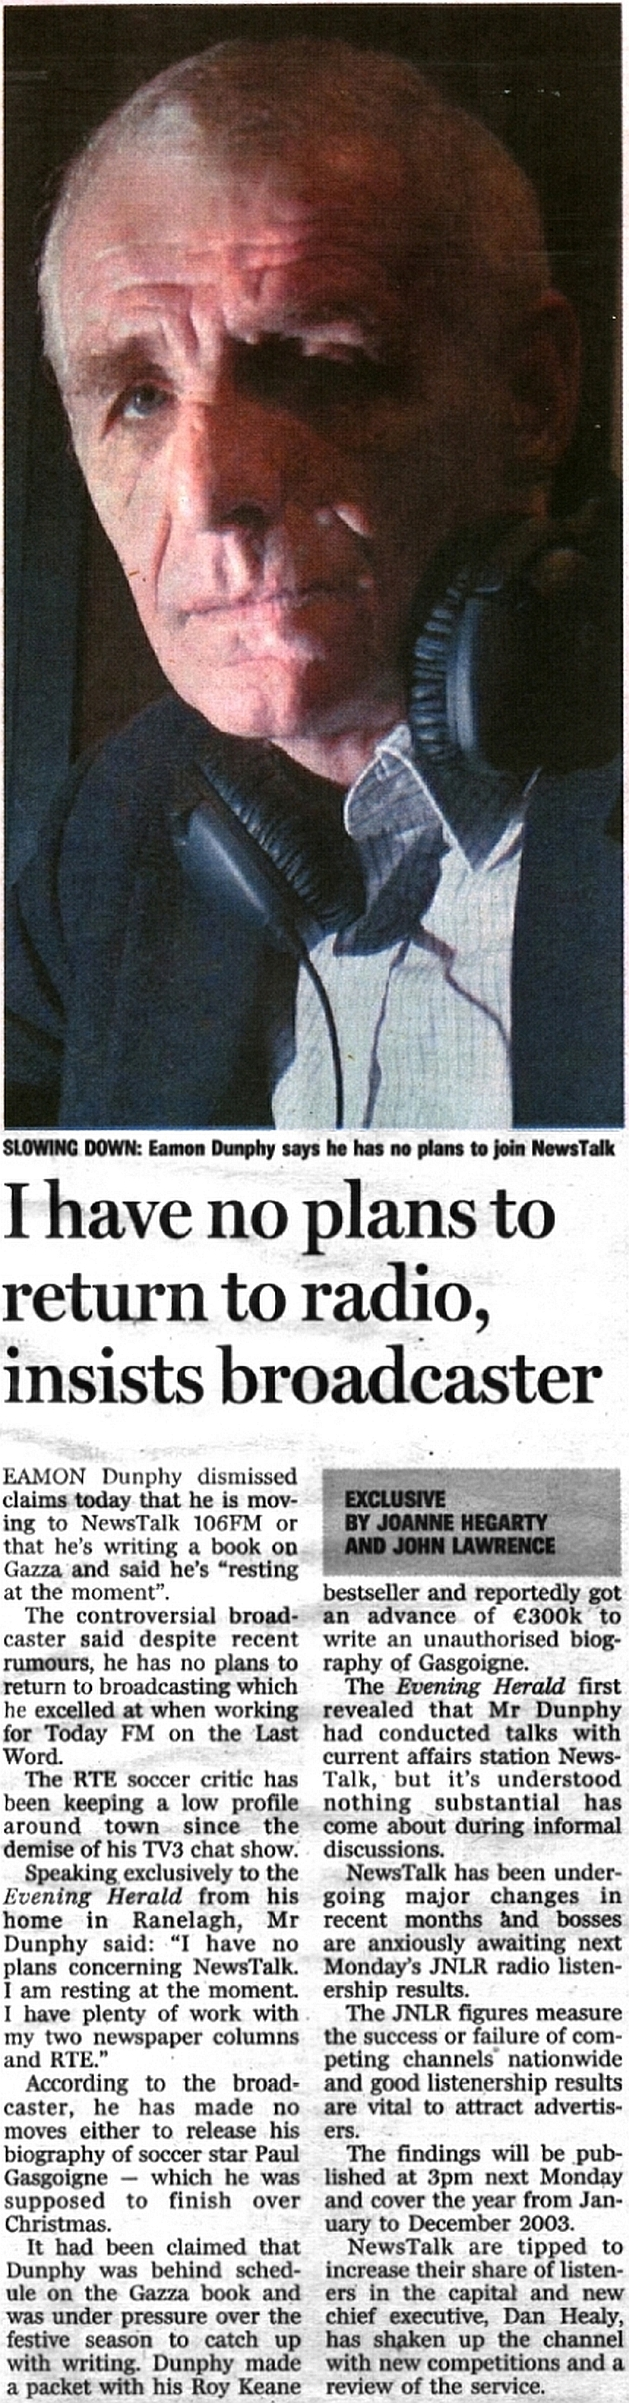 I have no plans to return to radio